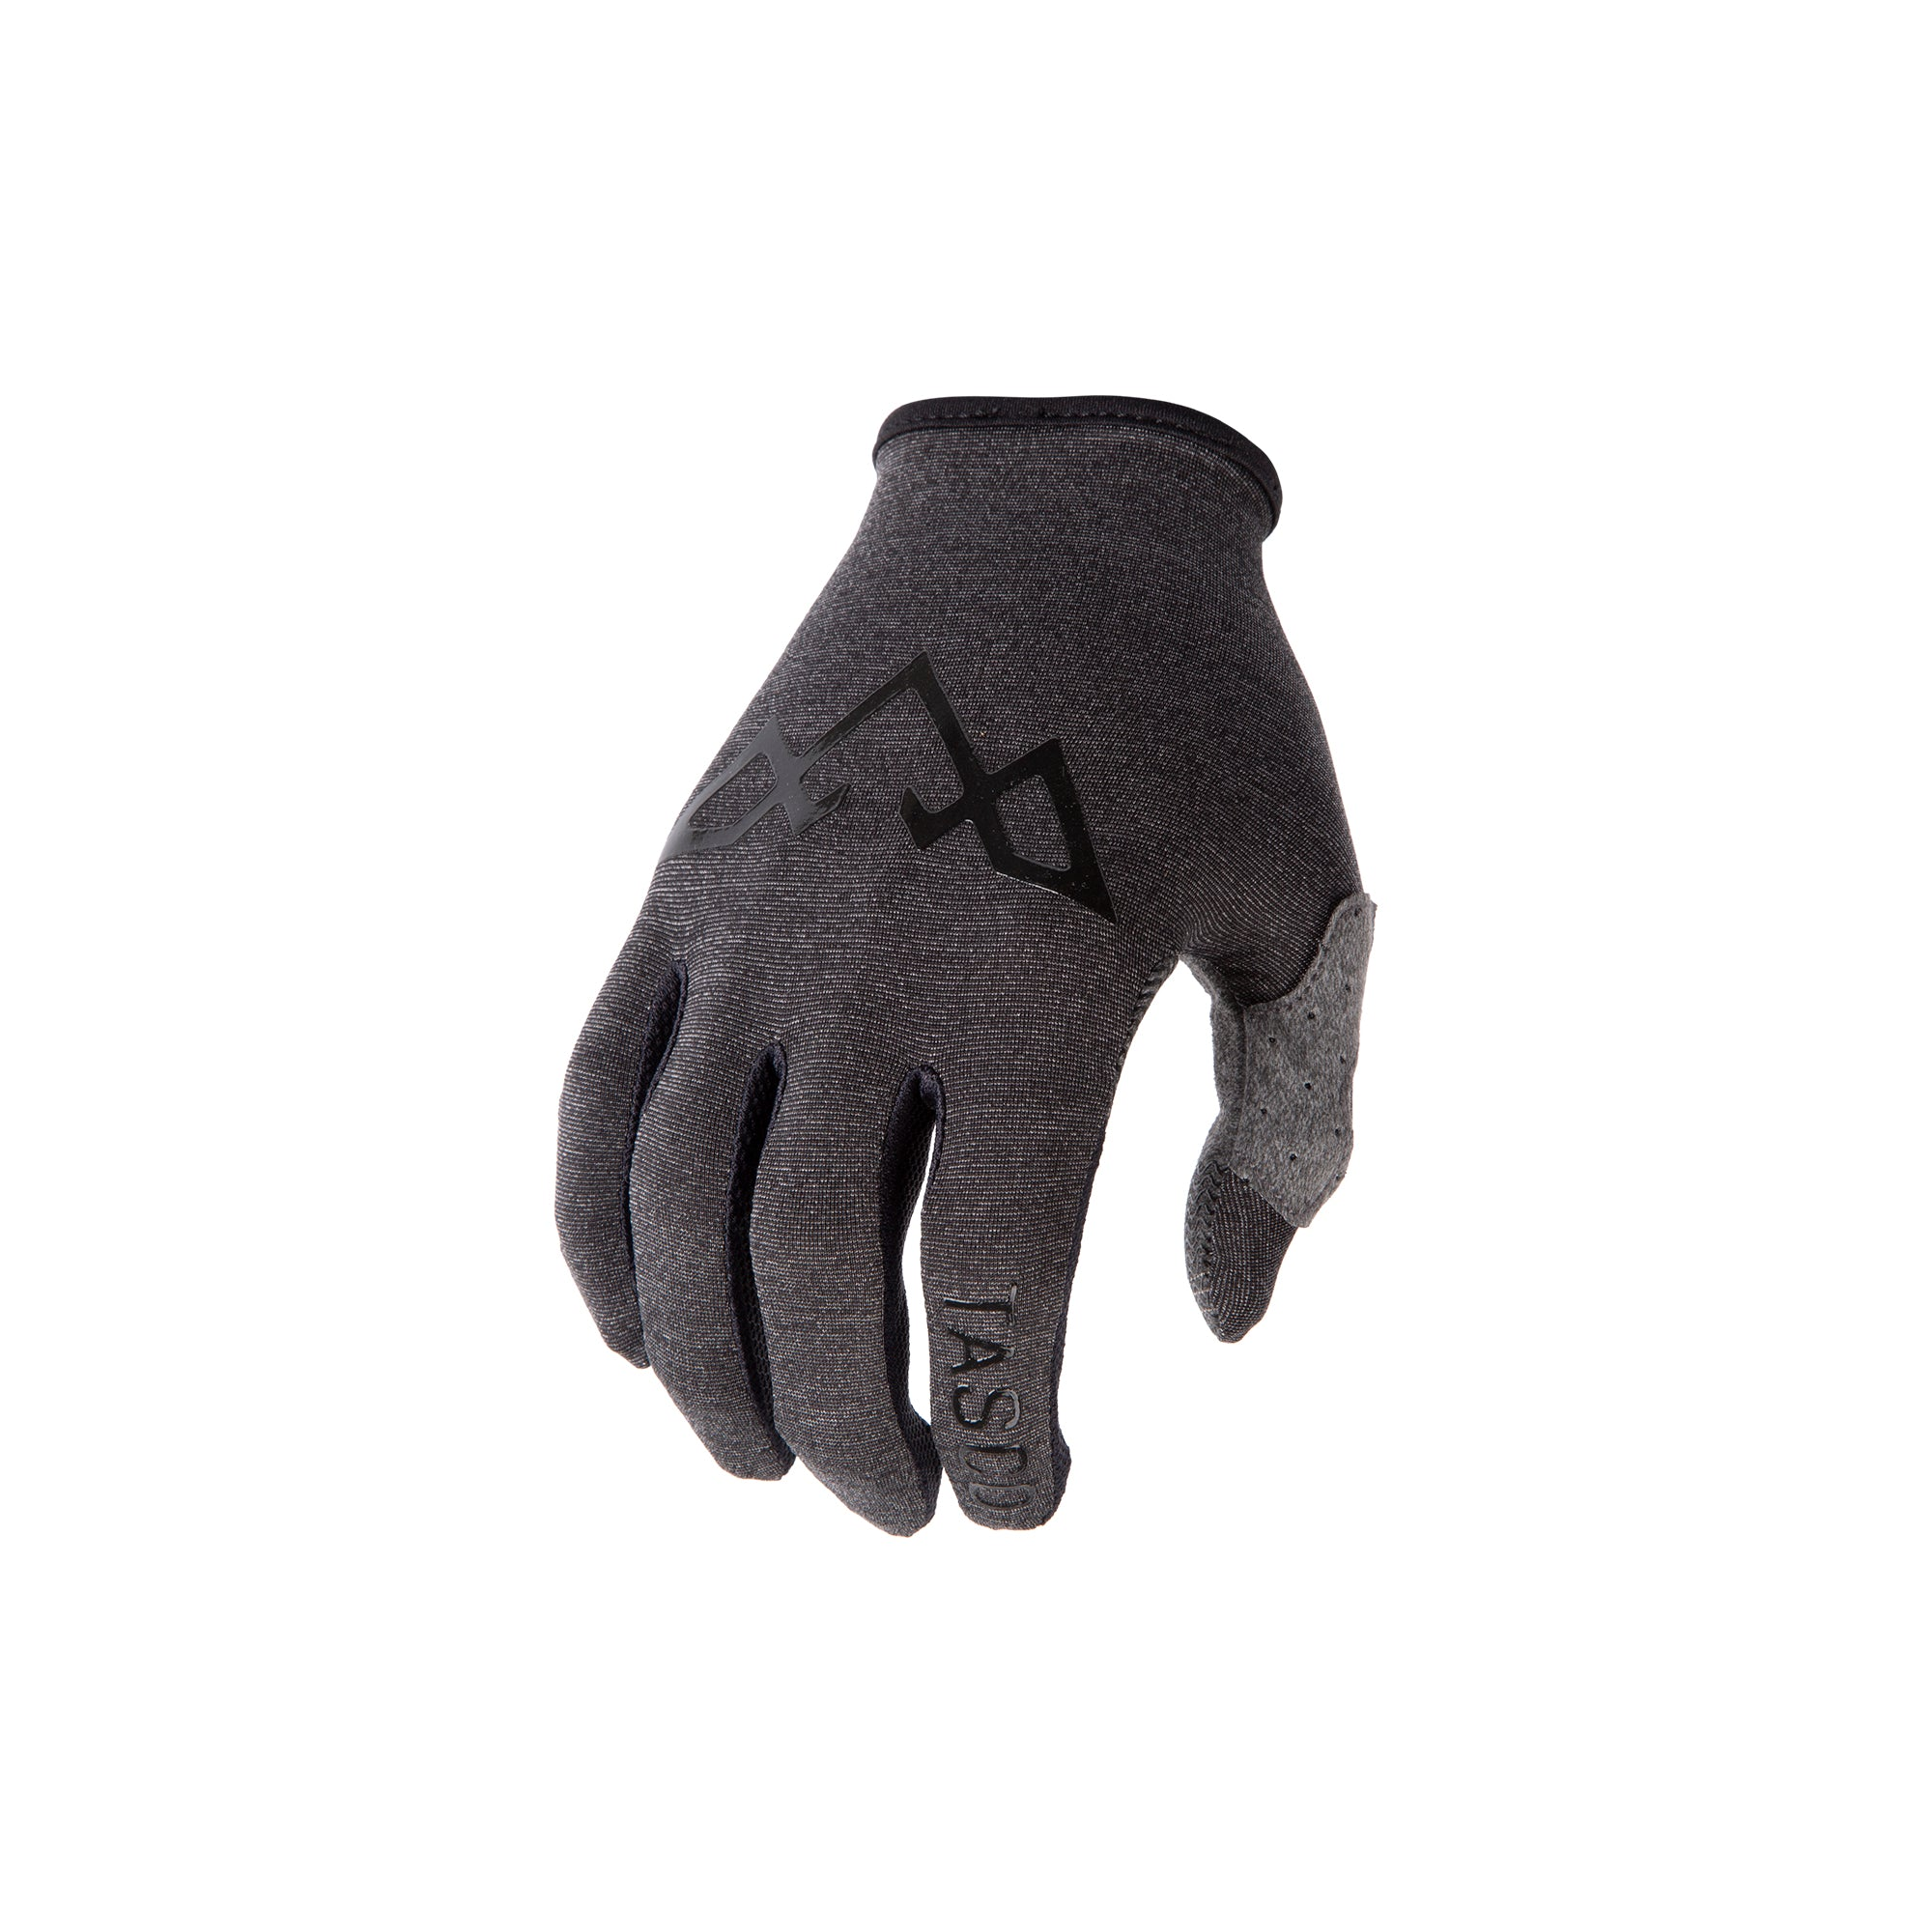 RECON Ultralight Cycling Gloves - The Stealth